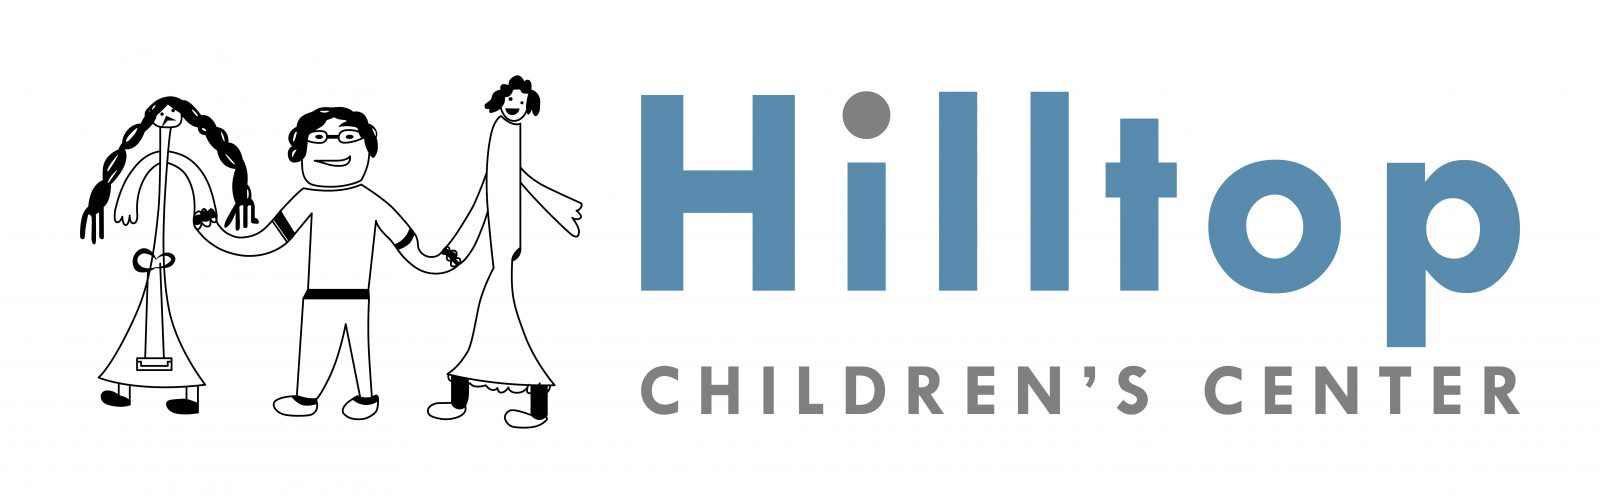 Hilltop Children's Center